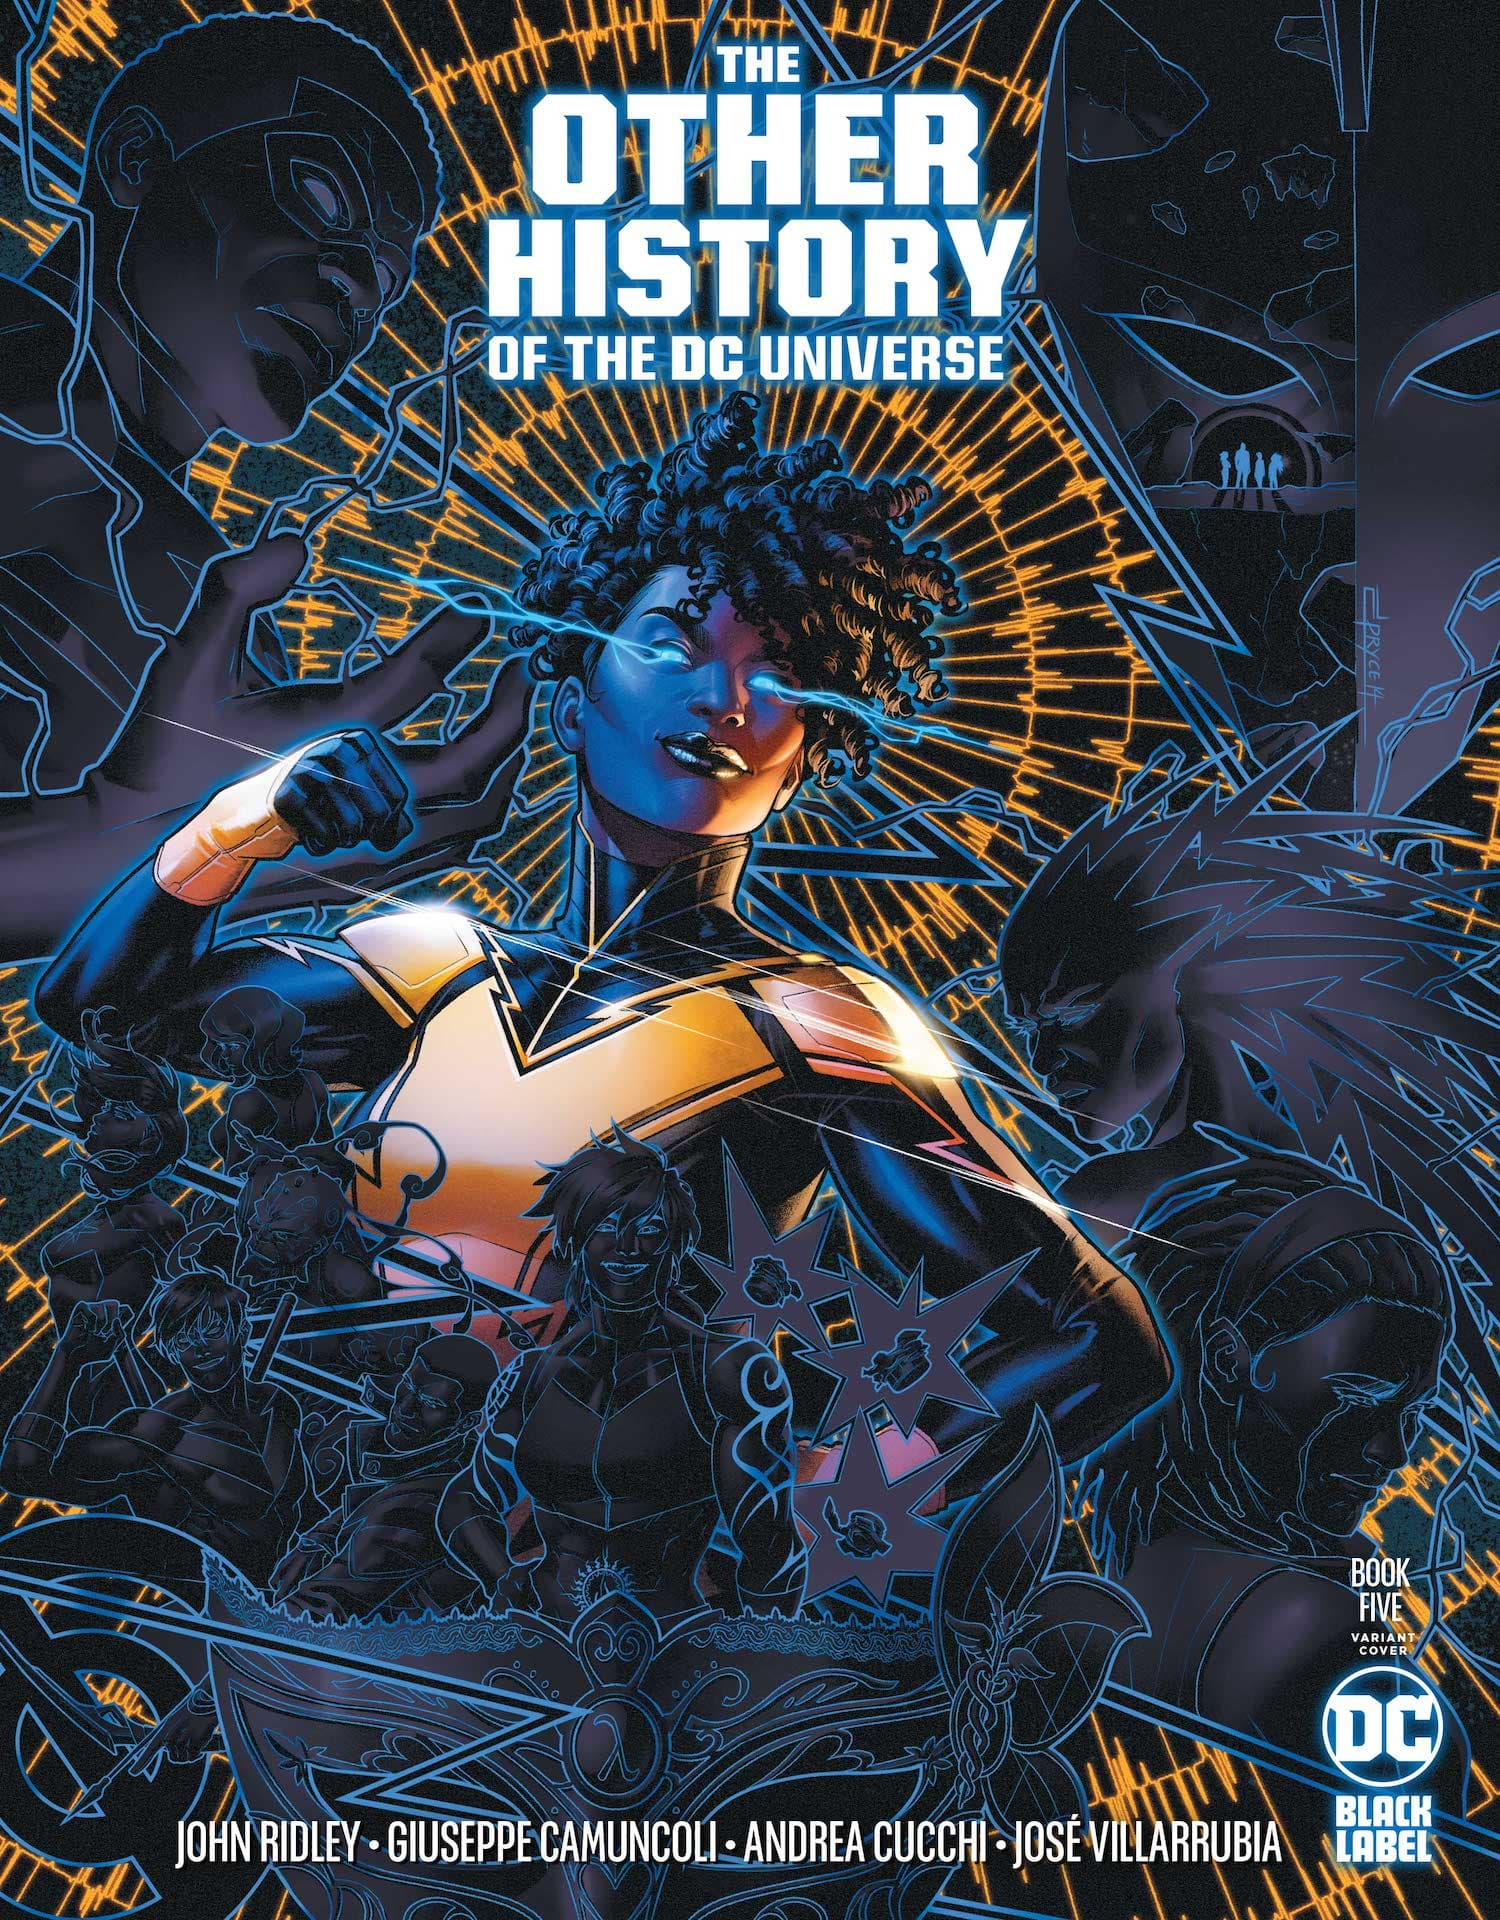 The-Other-History-of-the-DC-Universe-5-2